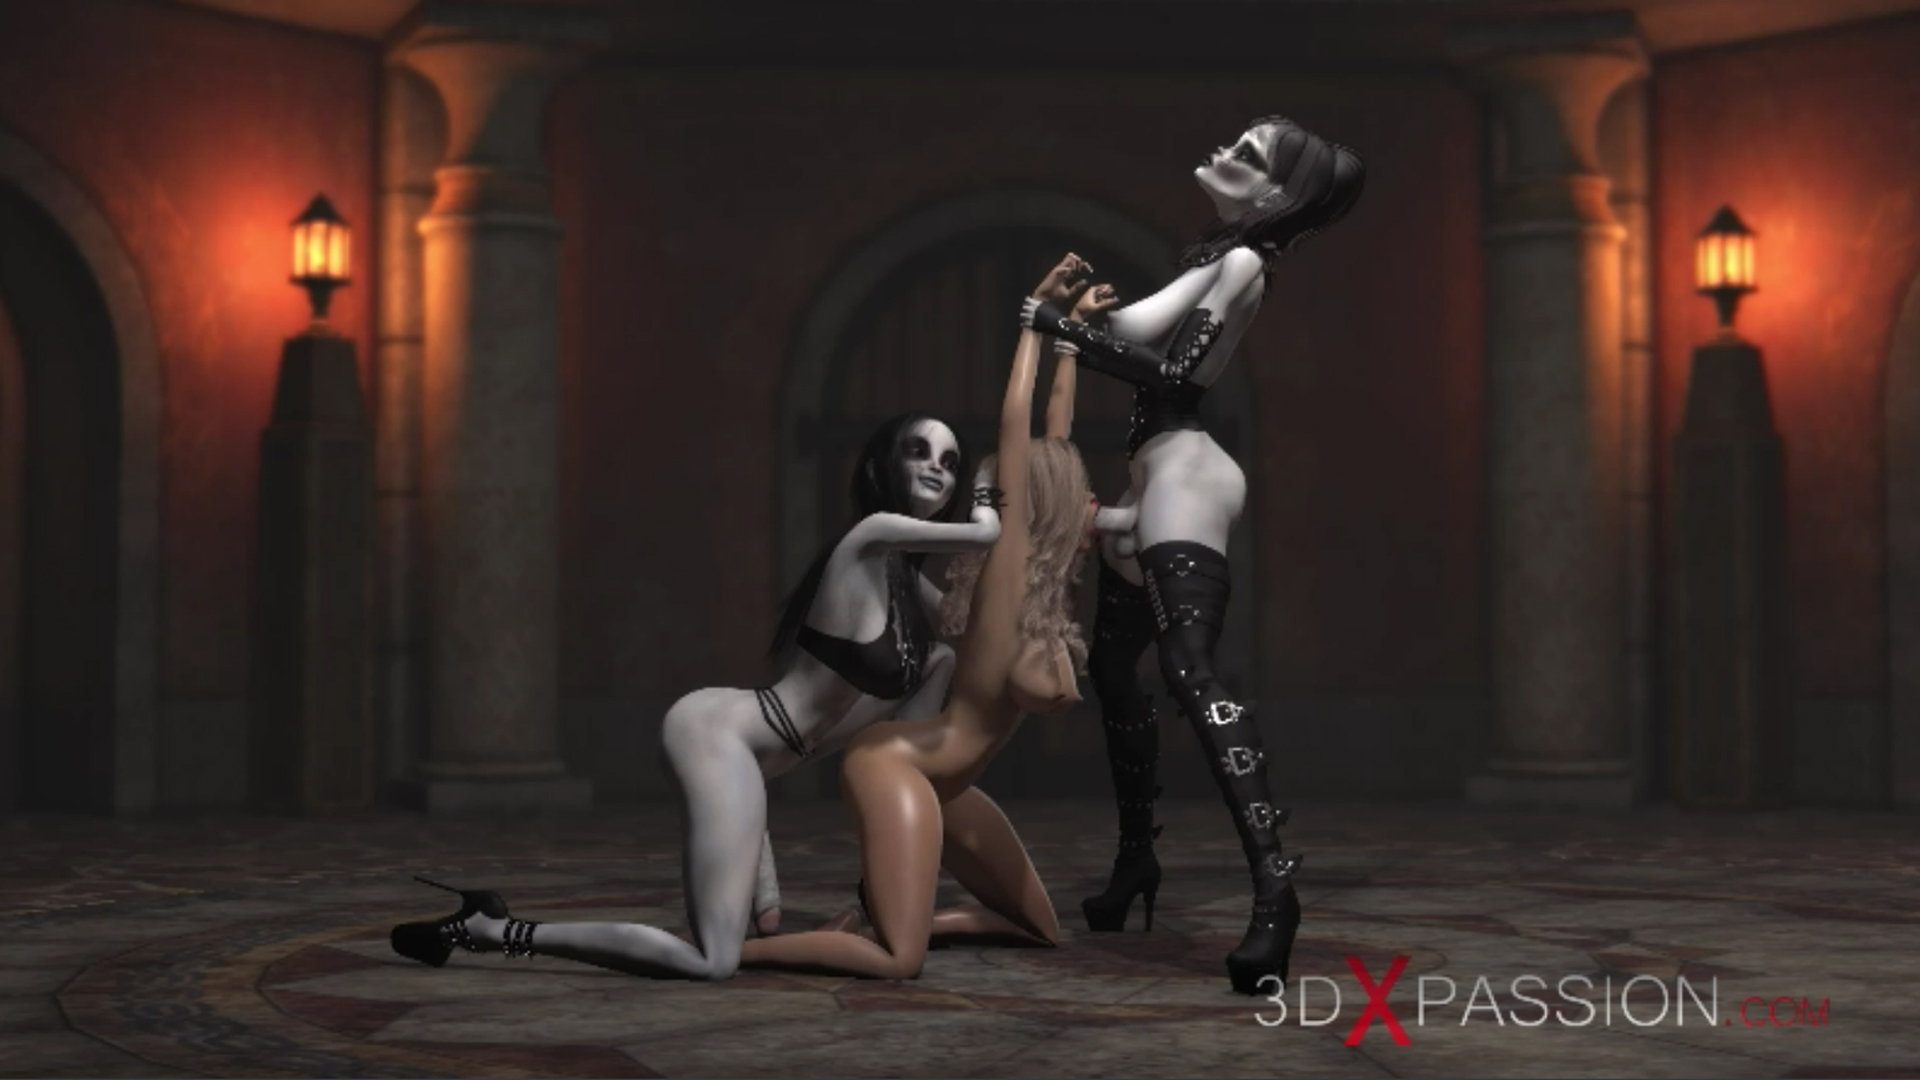 Hot girl slave gets fucked hard by satanic witches in the dark castle double penetration deepthroat